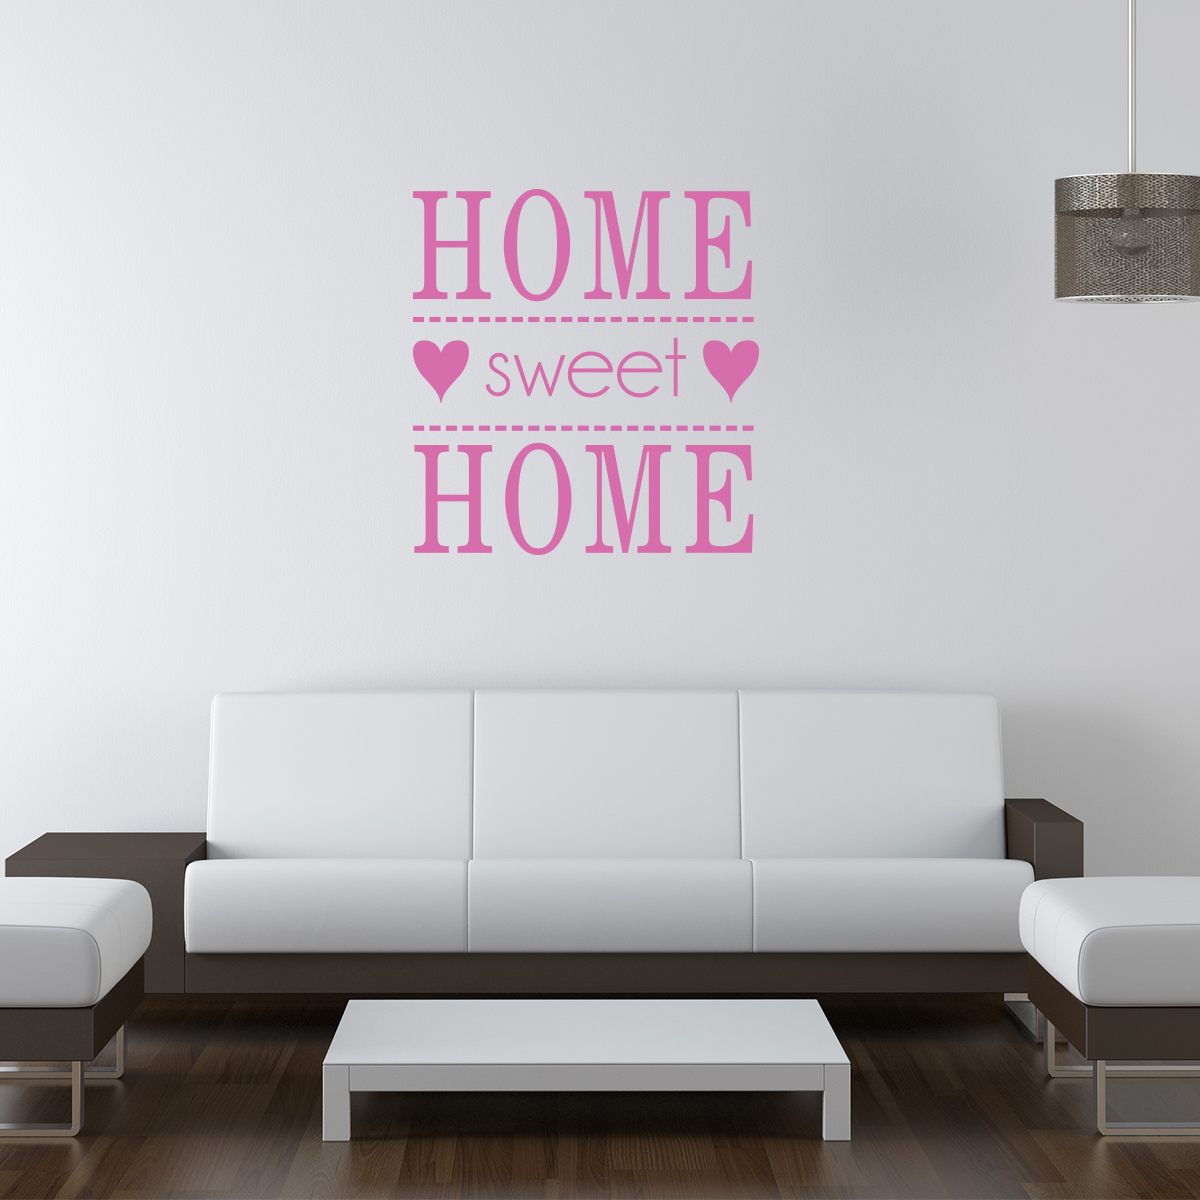 stickers muraux citations sticker home sweet home. Black Bedroom Furniture Sets. Home Design Ideas